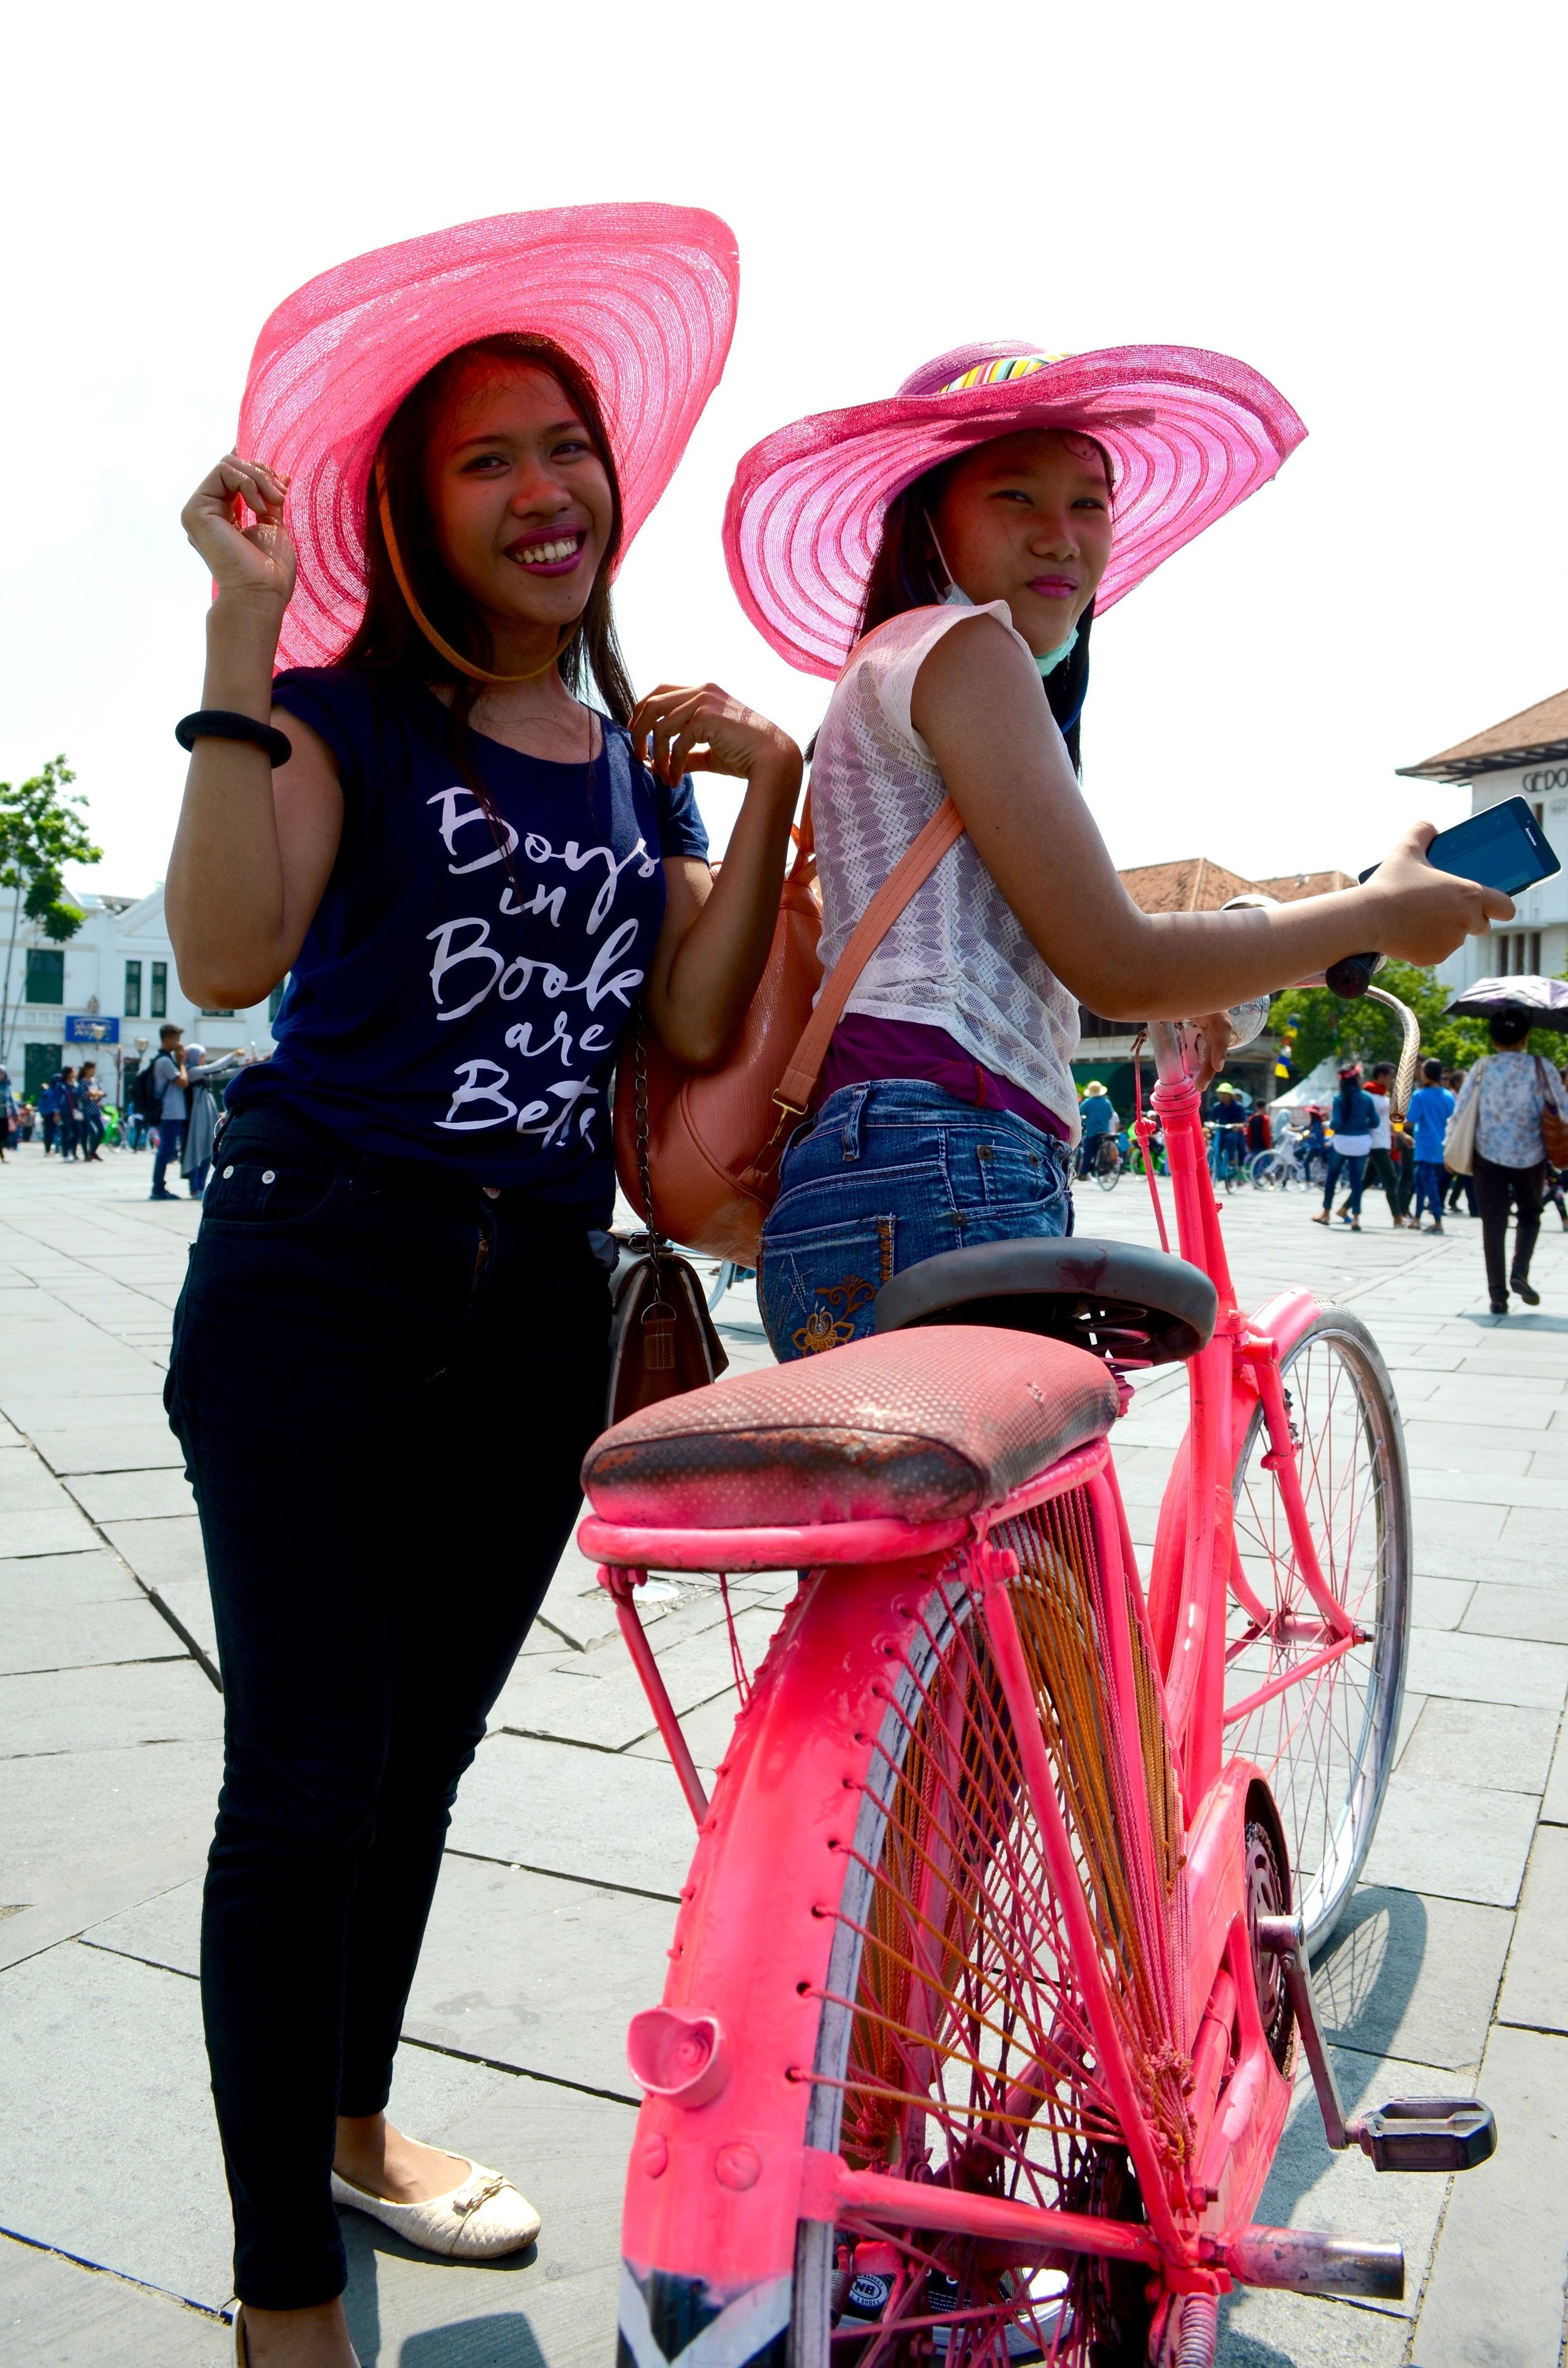 After school kids could rent colourful bicycles and matching hats to ride around in the square. It seemed to be a fun